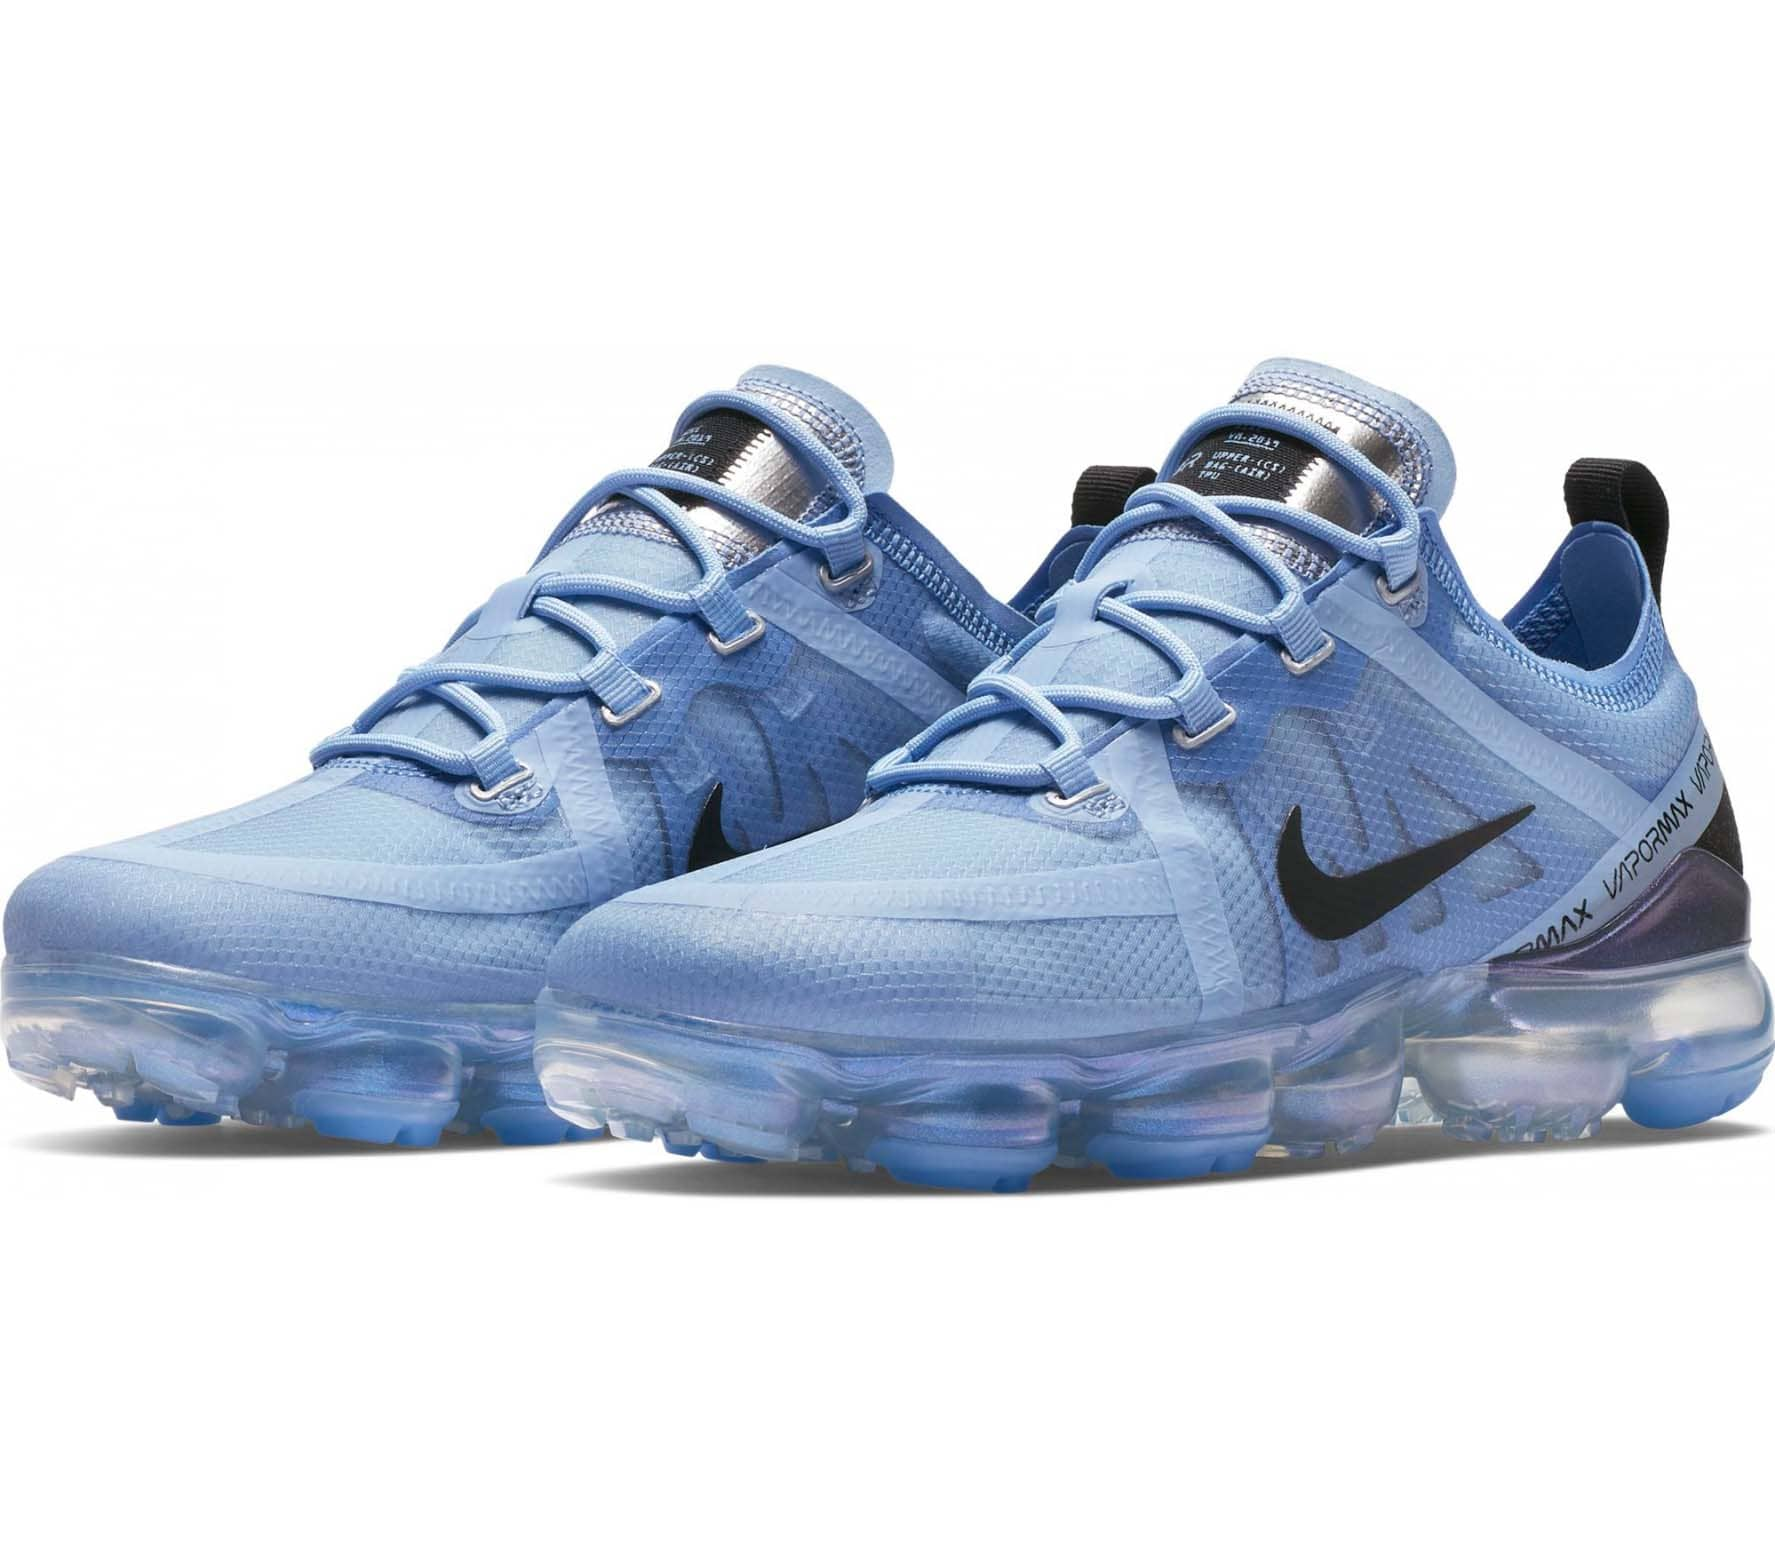 nike sportswear air vapormax 2019 damen sneaker blau. Black Bedroom Furniture Sets. Home Design Ideas